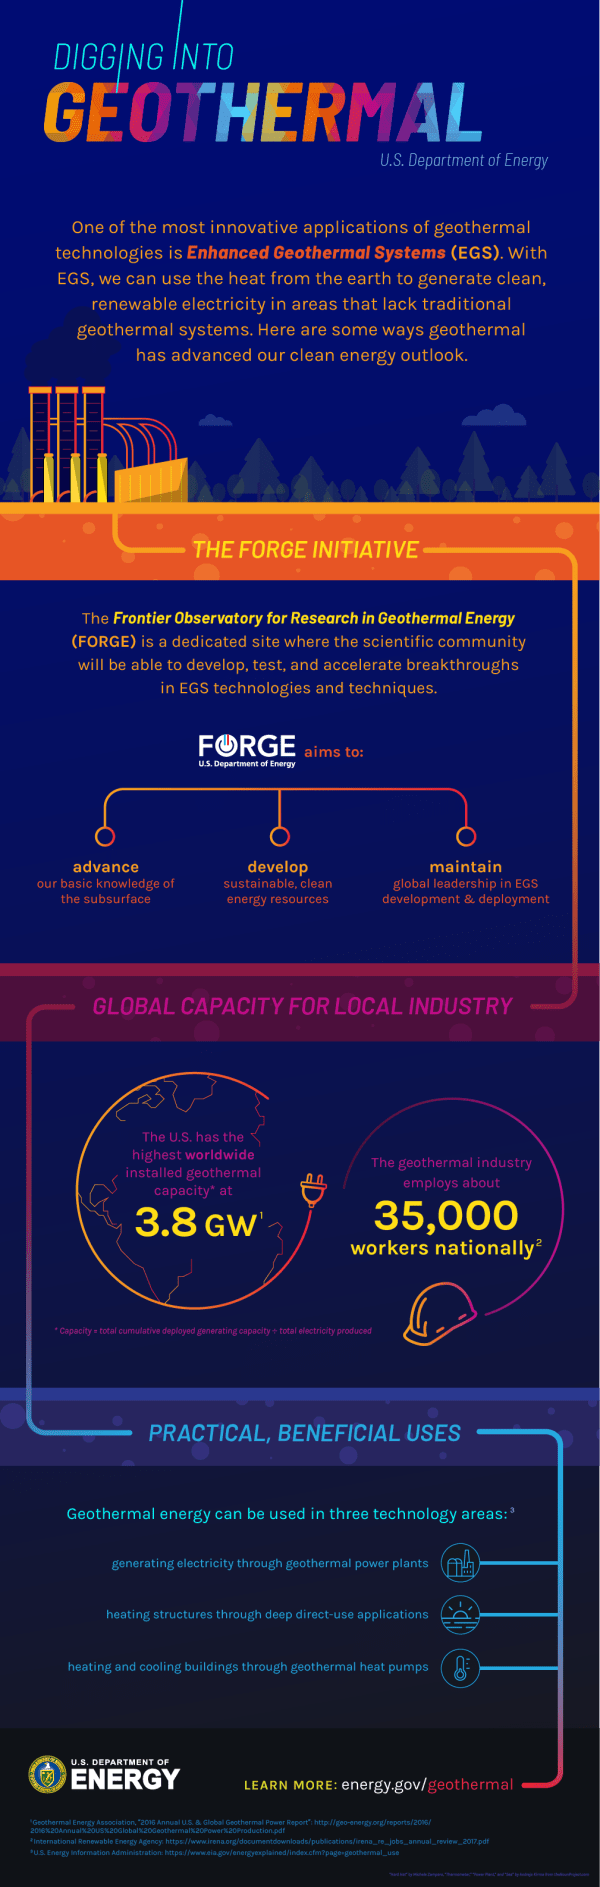 Infographic Digging Geothermal Department Of Energy